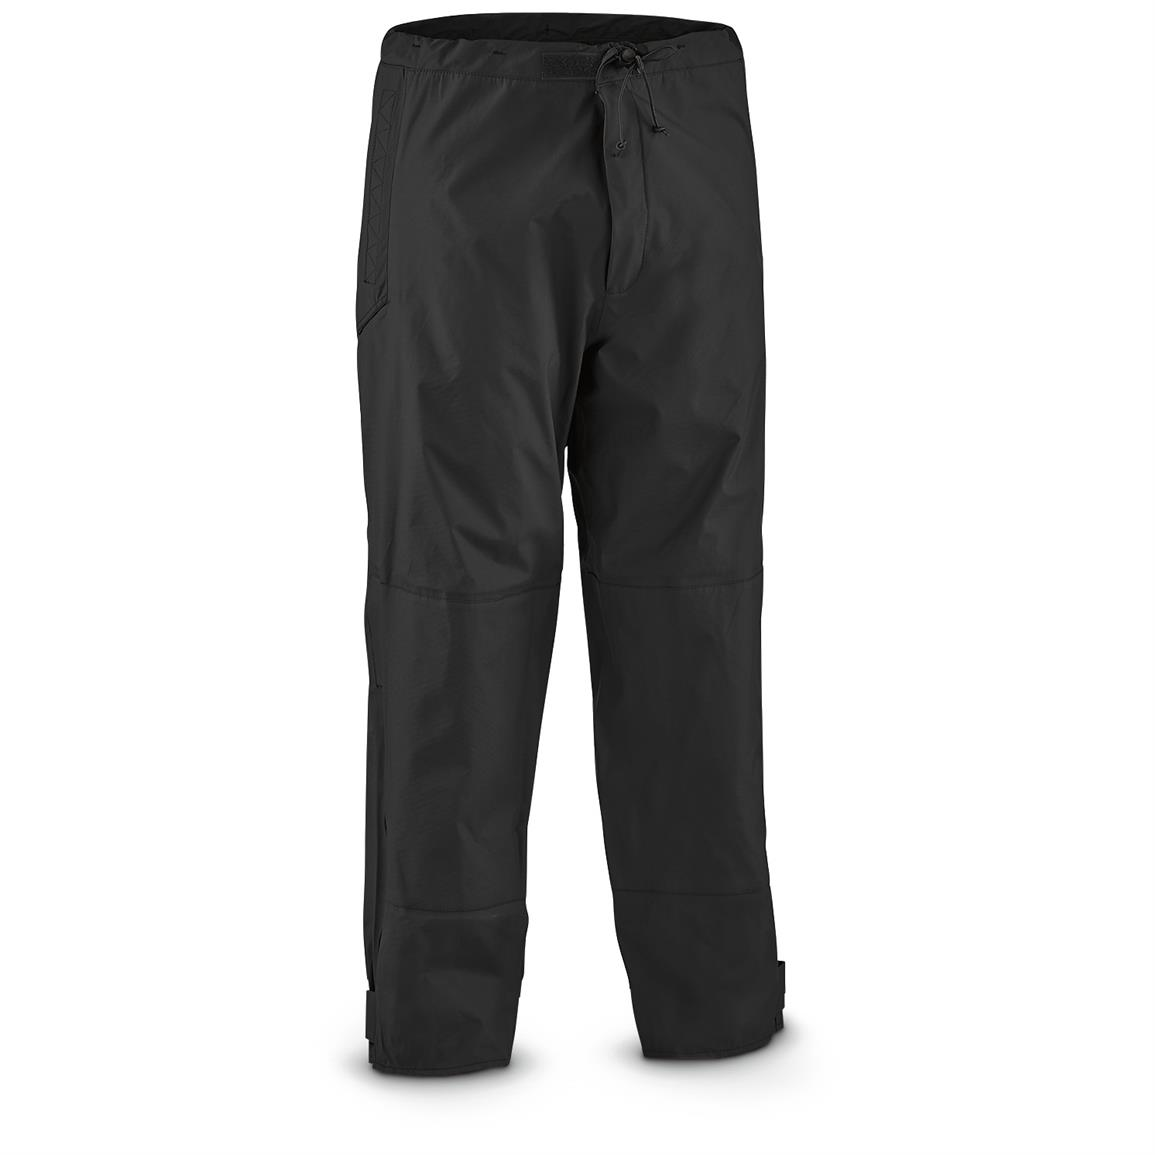 Voodoo Tactical ECW Waterproof Pants, Black